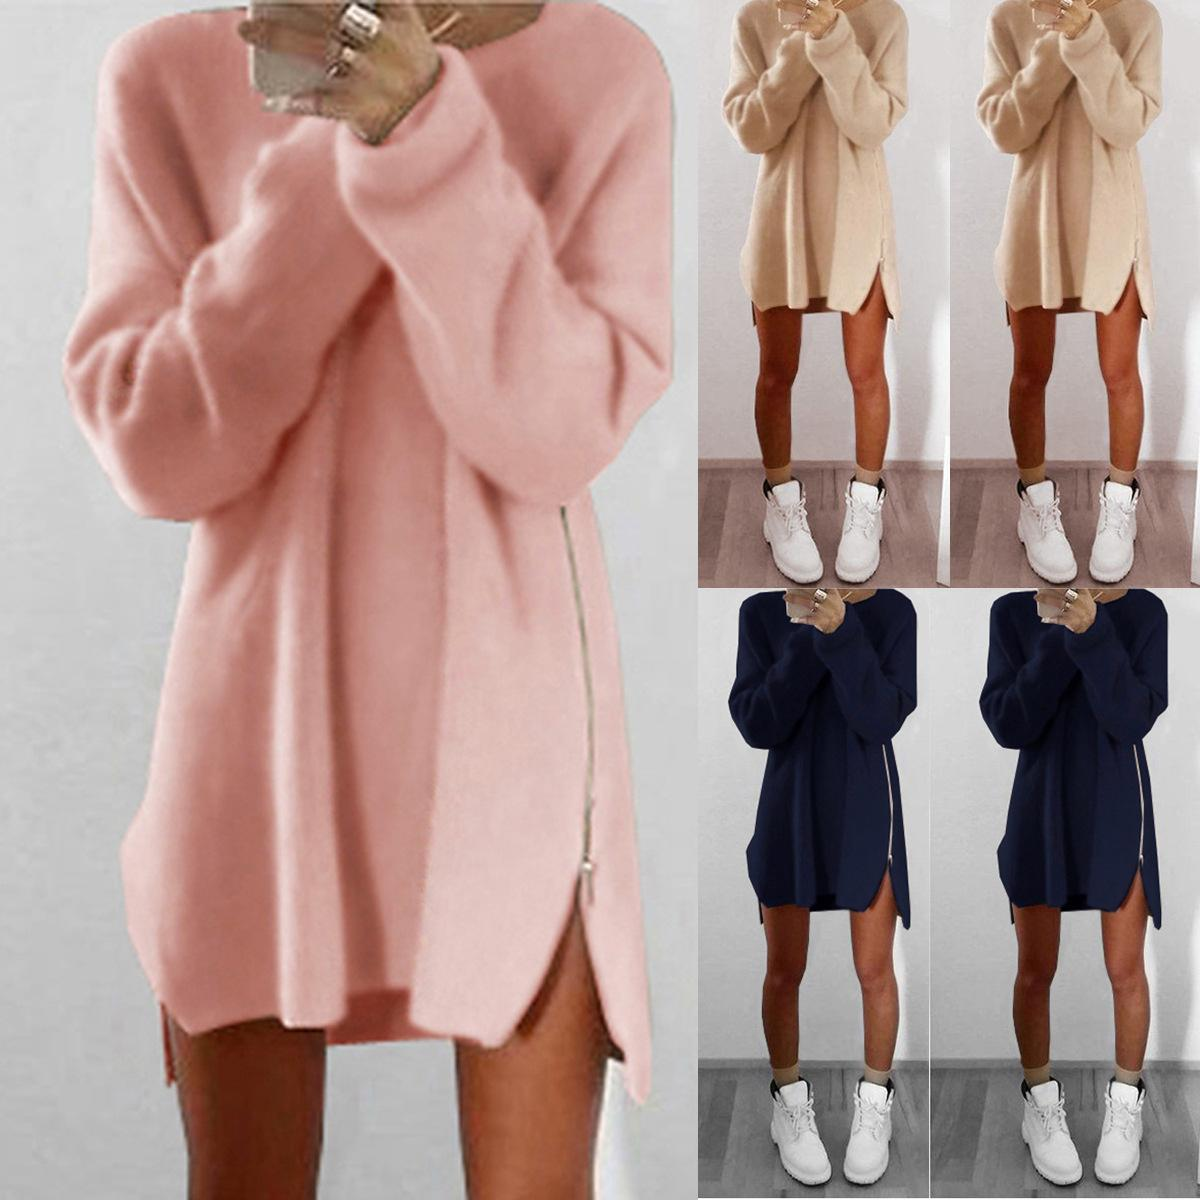 1a95e60f1df Sexy Womens Ladies Winter Long Sleeve Jumper Tops Fashion Girls Knitted  Oversized Baggy Sweater Casual Loose Tunic Jumpers Mini Dress